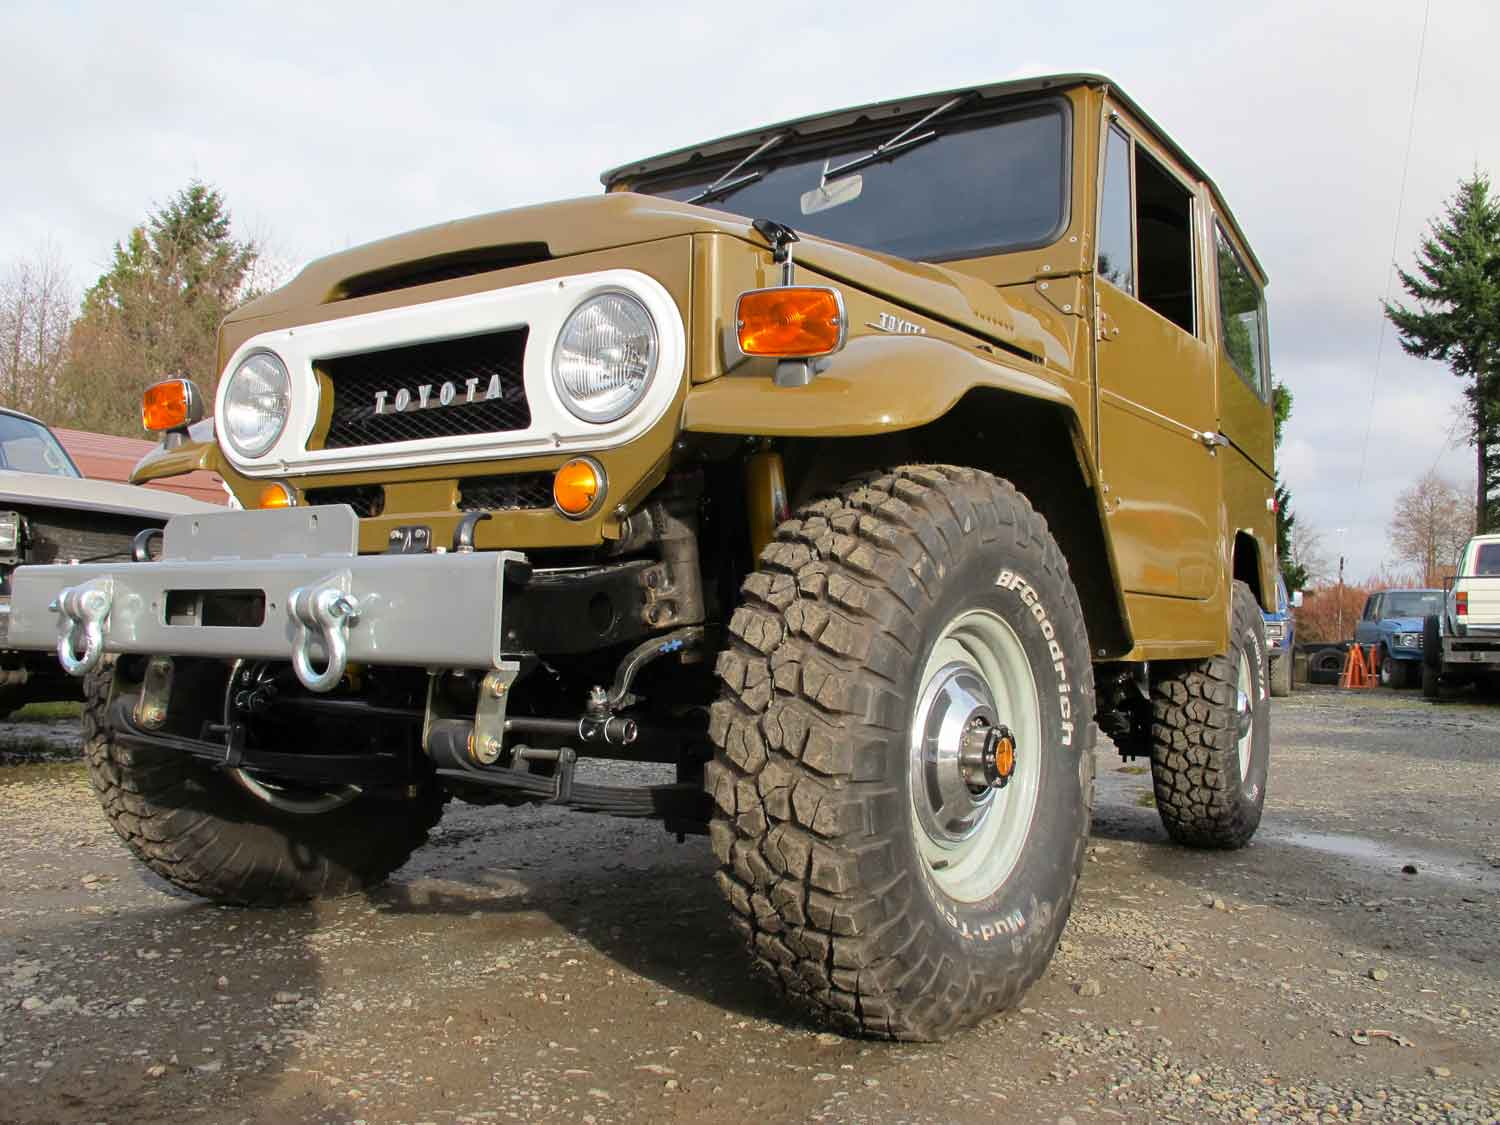 FJ40 Restoration » Torfab » The NW destination for Land Cruisers